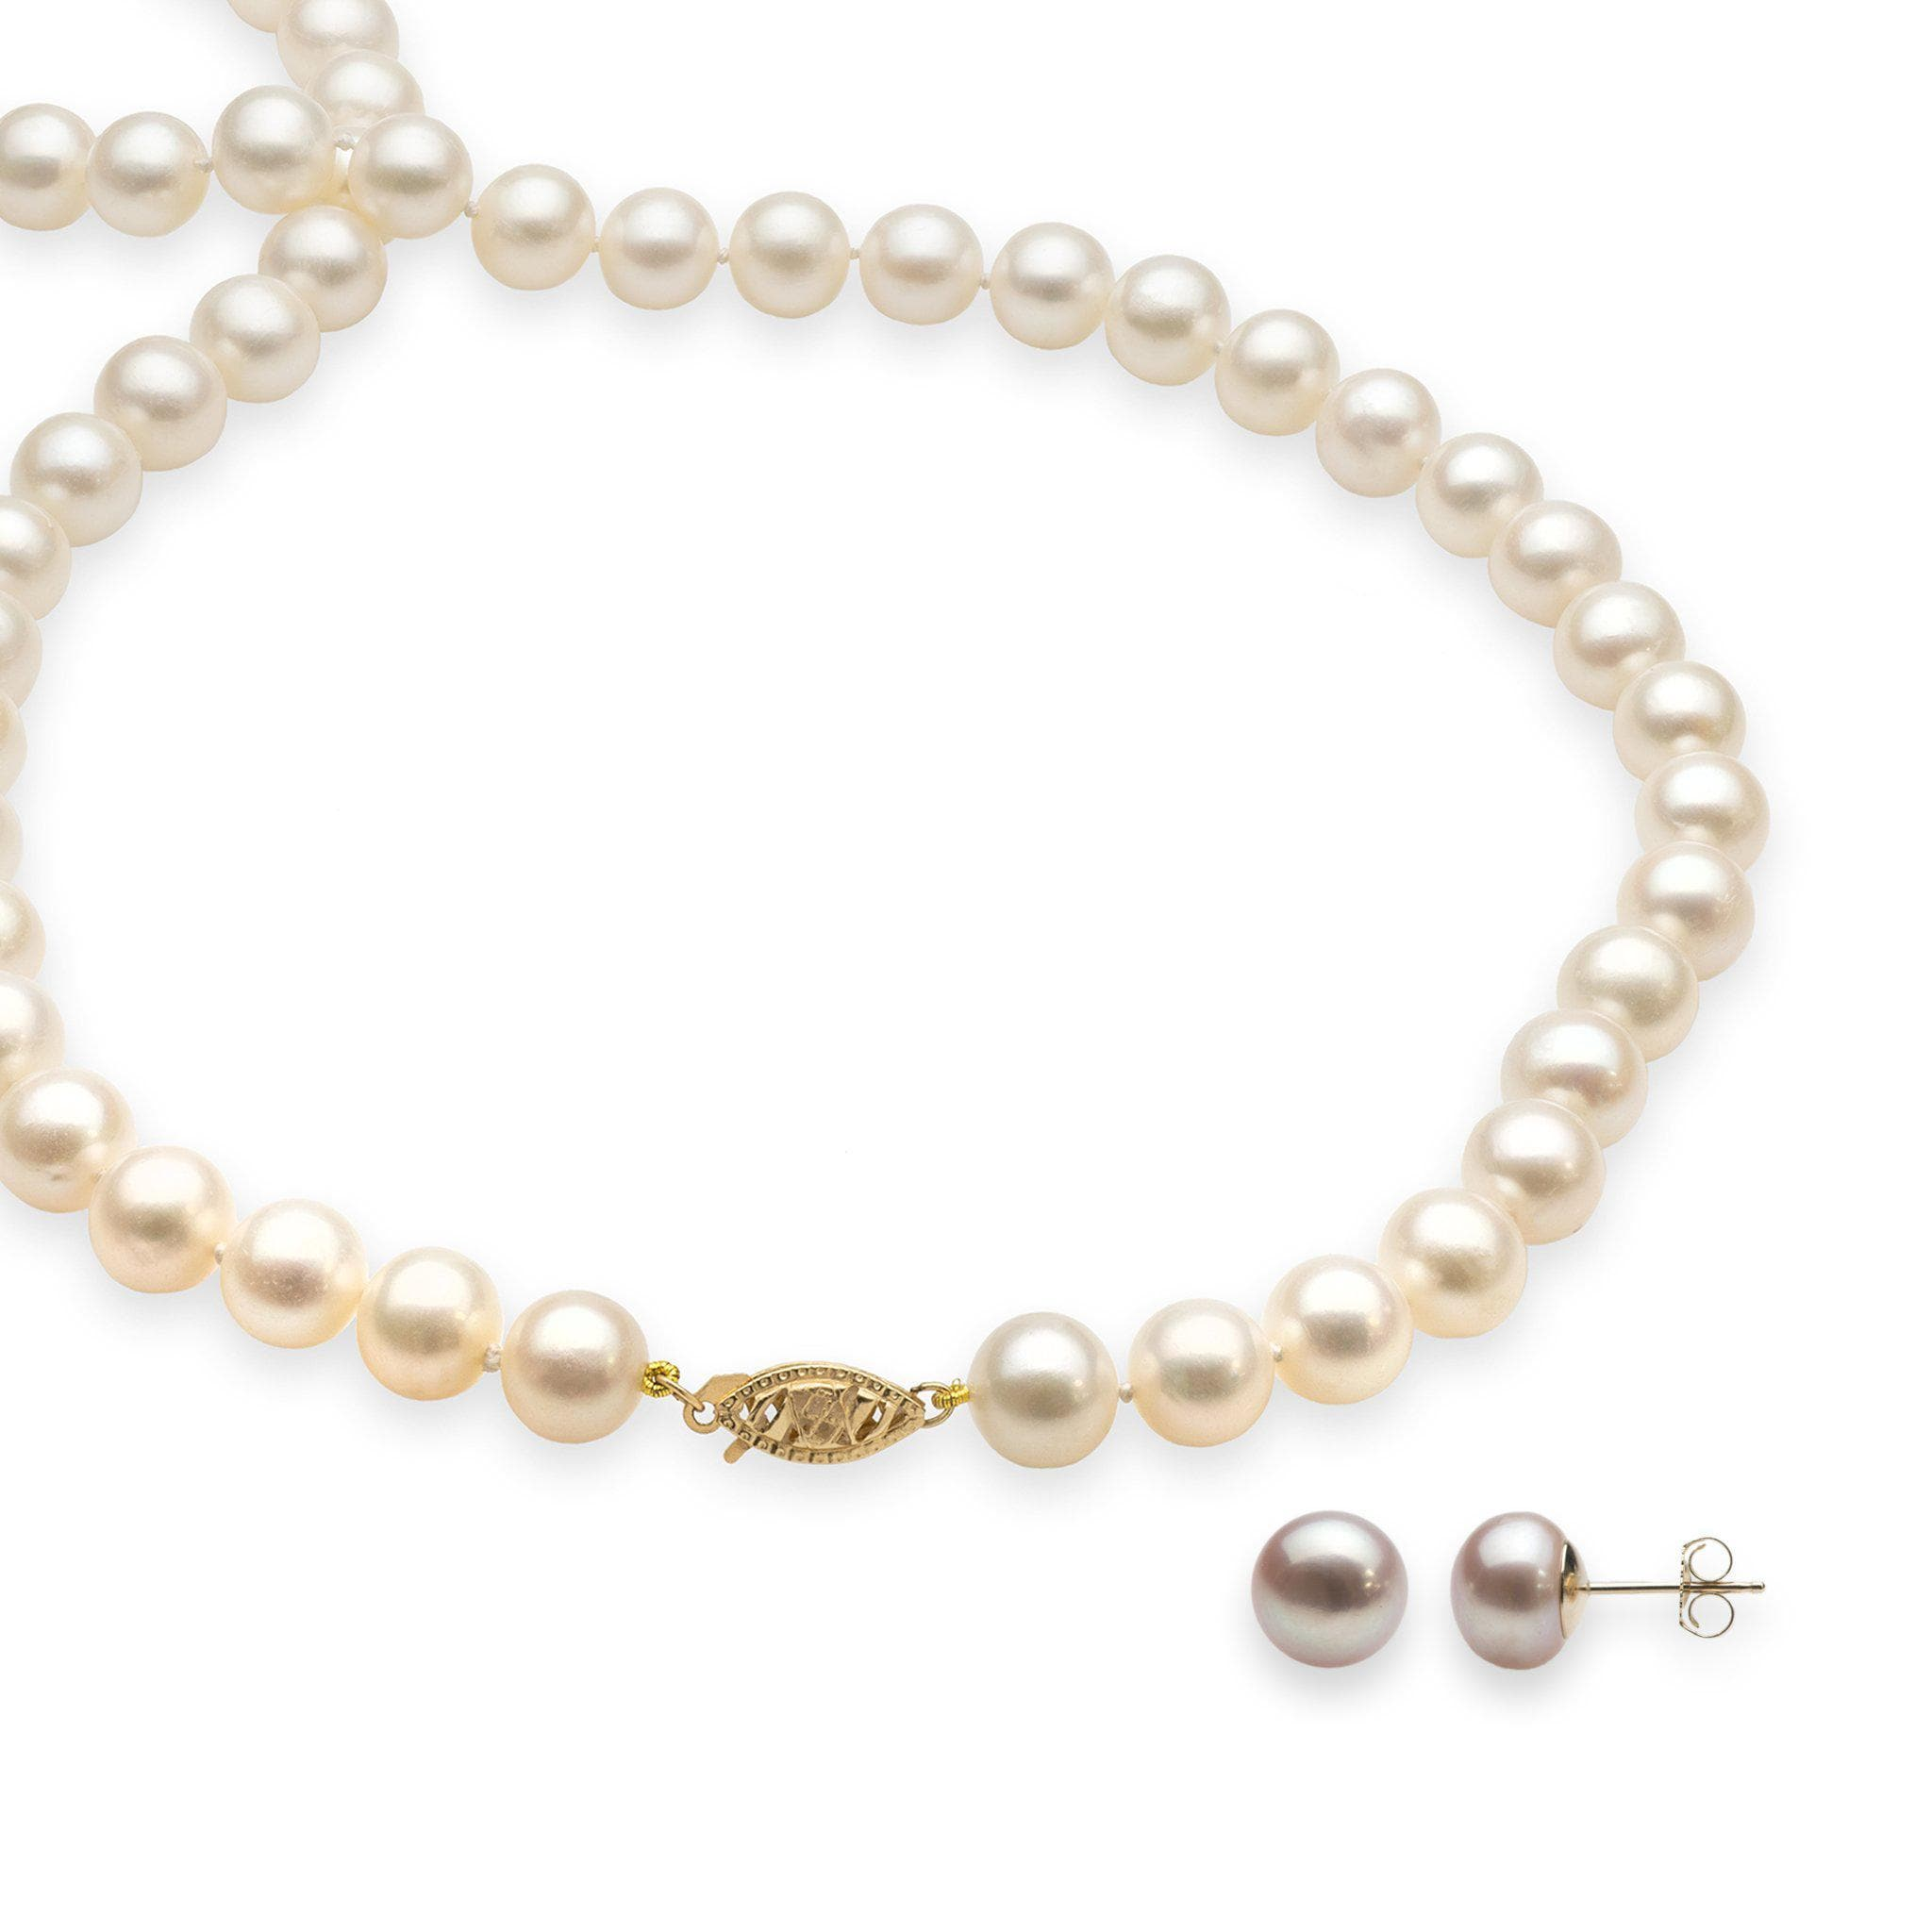 Shop Freshwater Pearl Jewelry Online at Maui Divers